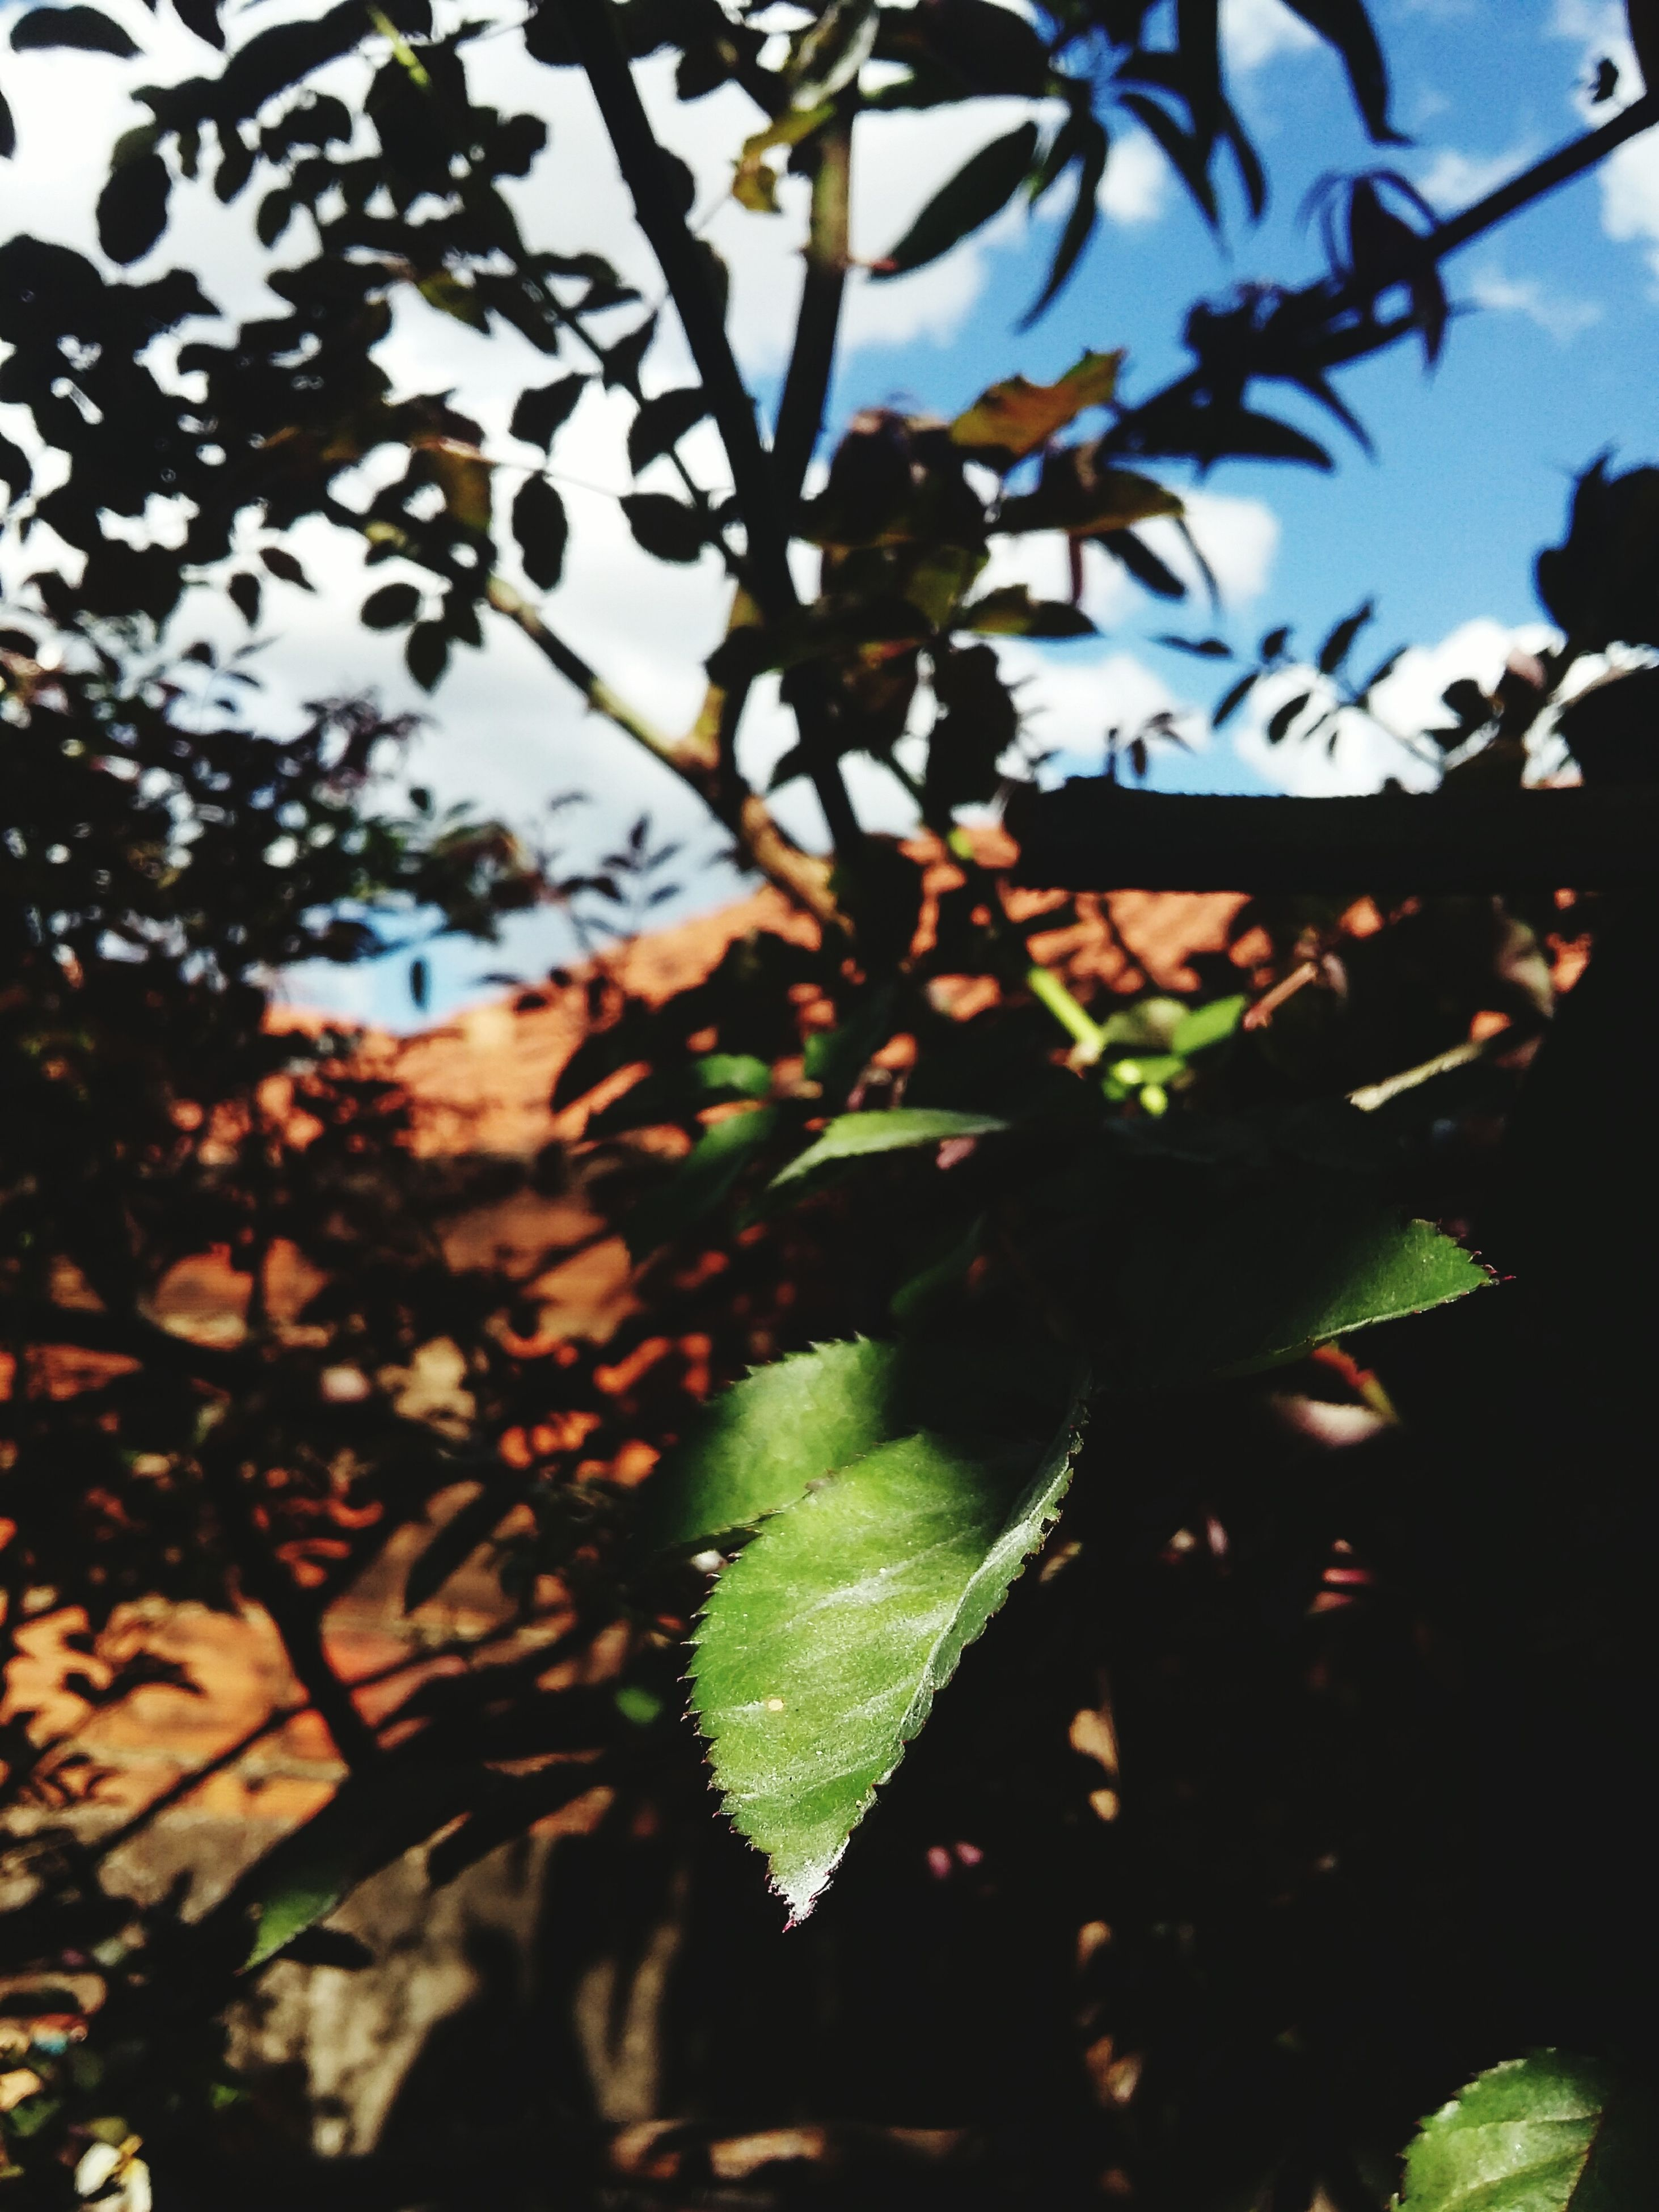 leaf, tree, nature, growth, beauty in nature, outdoors, day, branch, no people, close-up, freshness